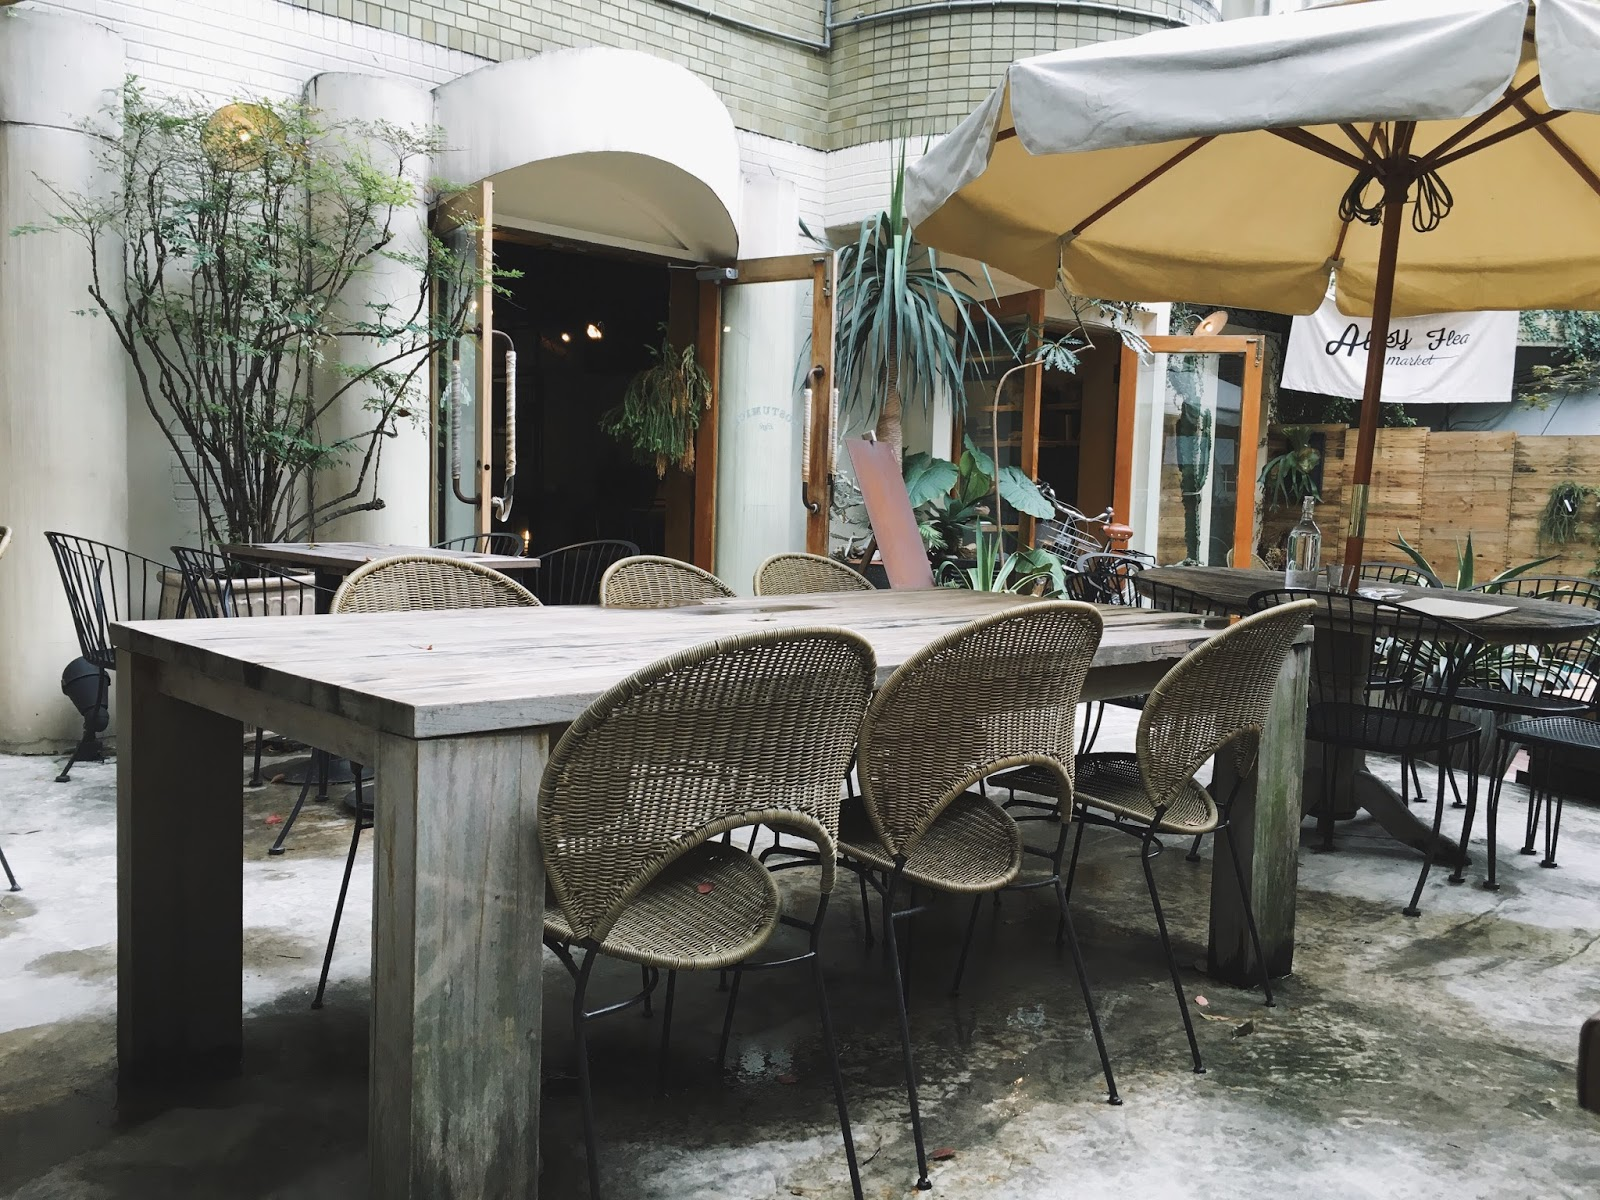 this cafe has a beautifully designed inviting rustic space also a very distinctive outdoor patio it is a nice place to sit and relax